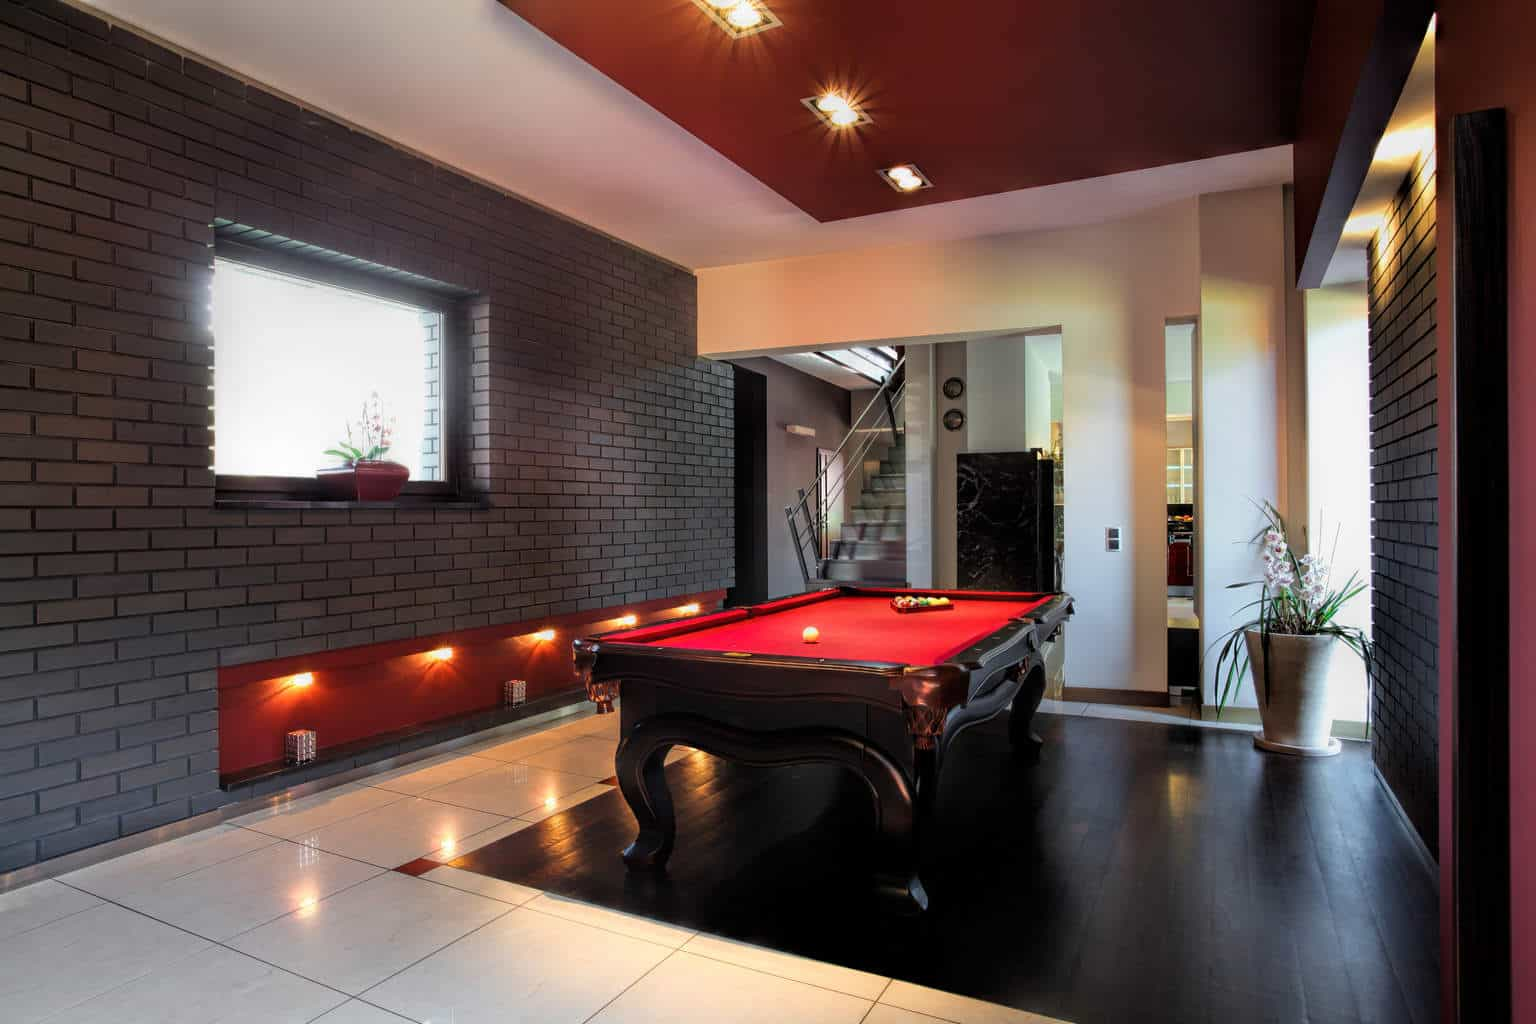 basement renovation ideas. Basement Renovation Ideas For The New Year